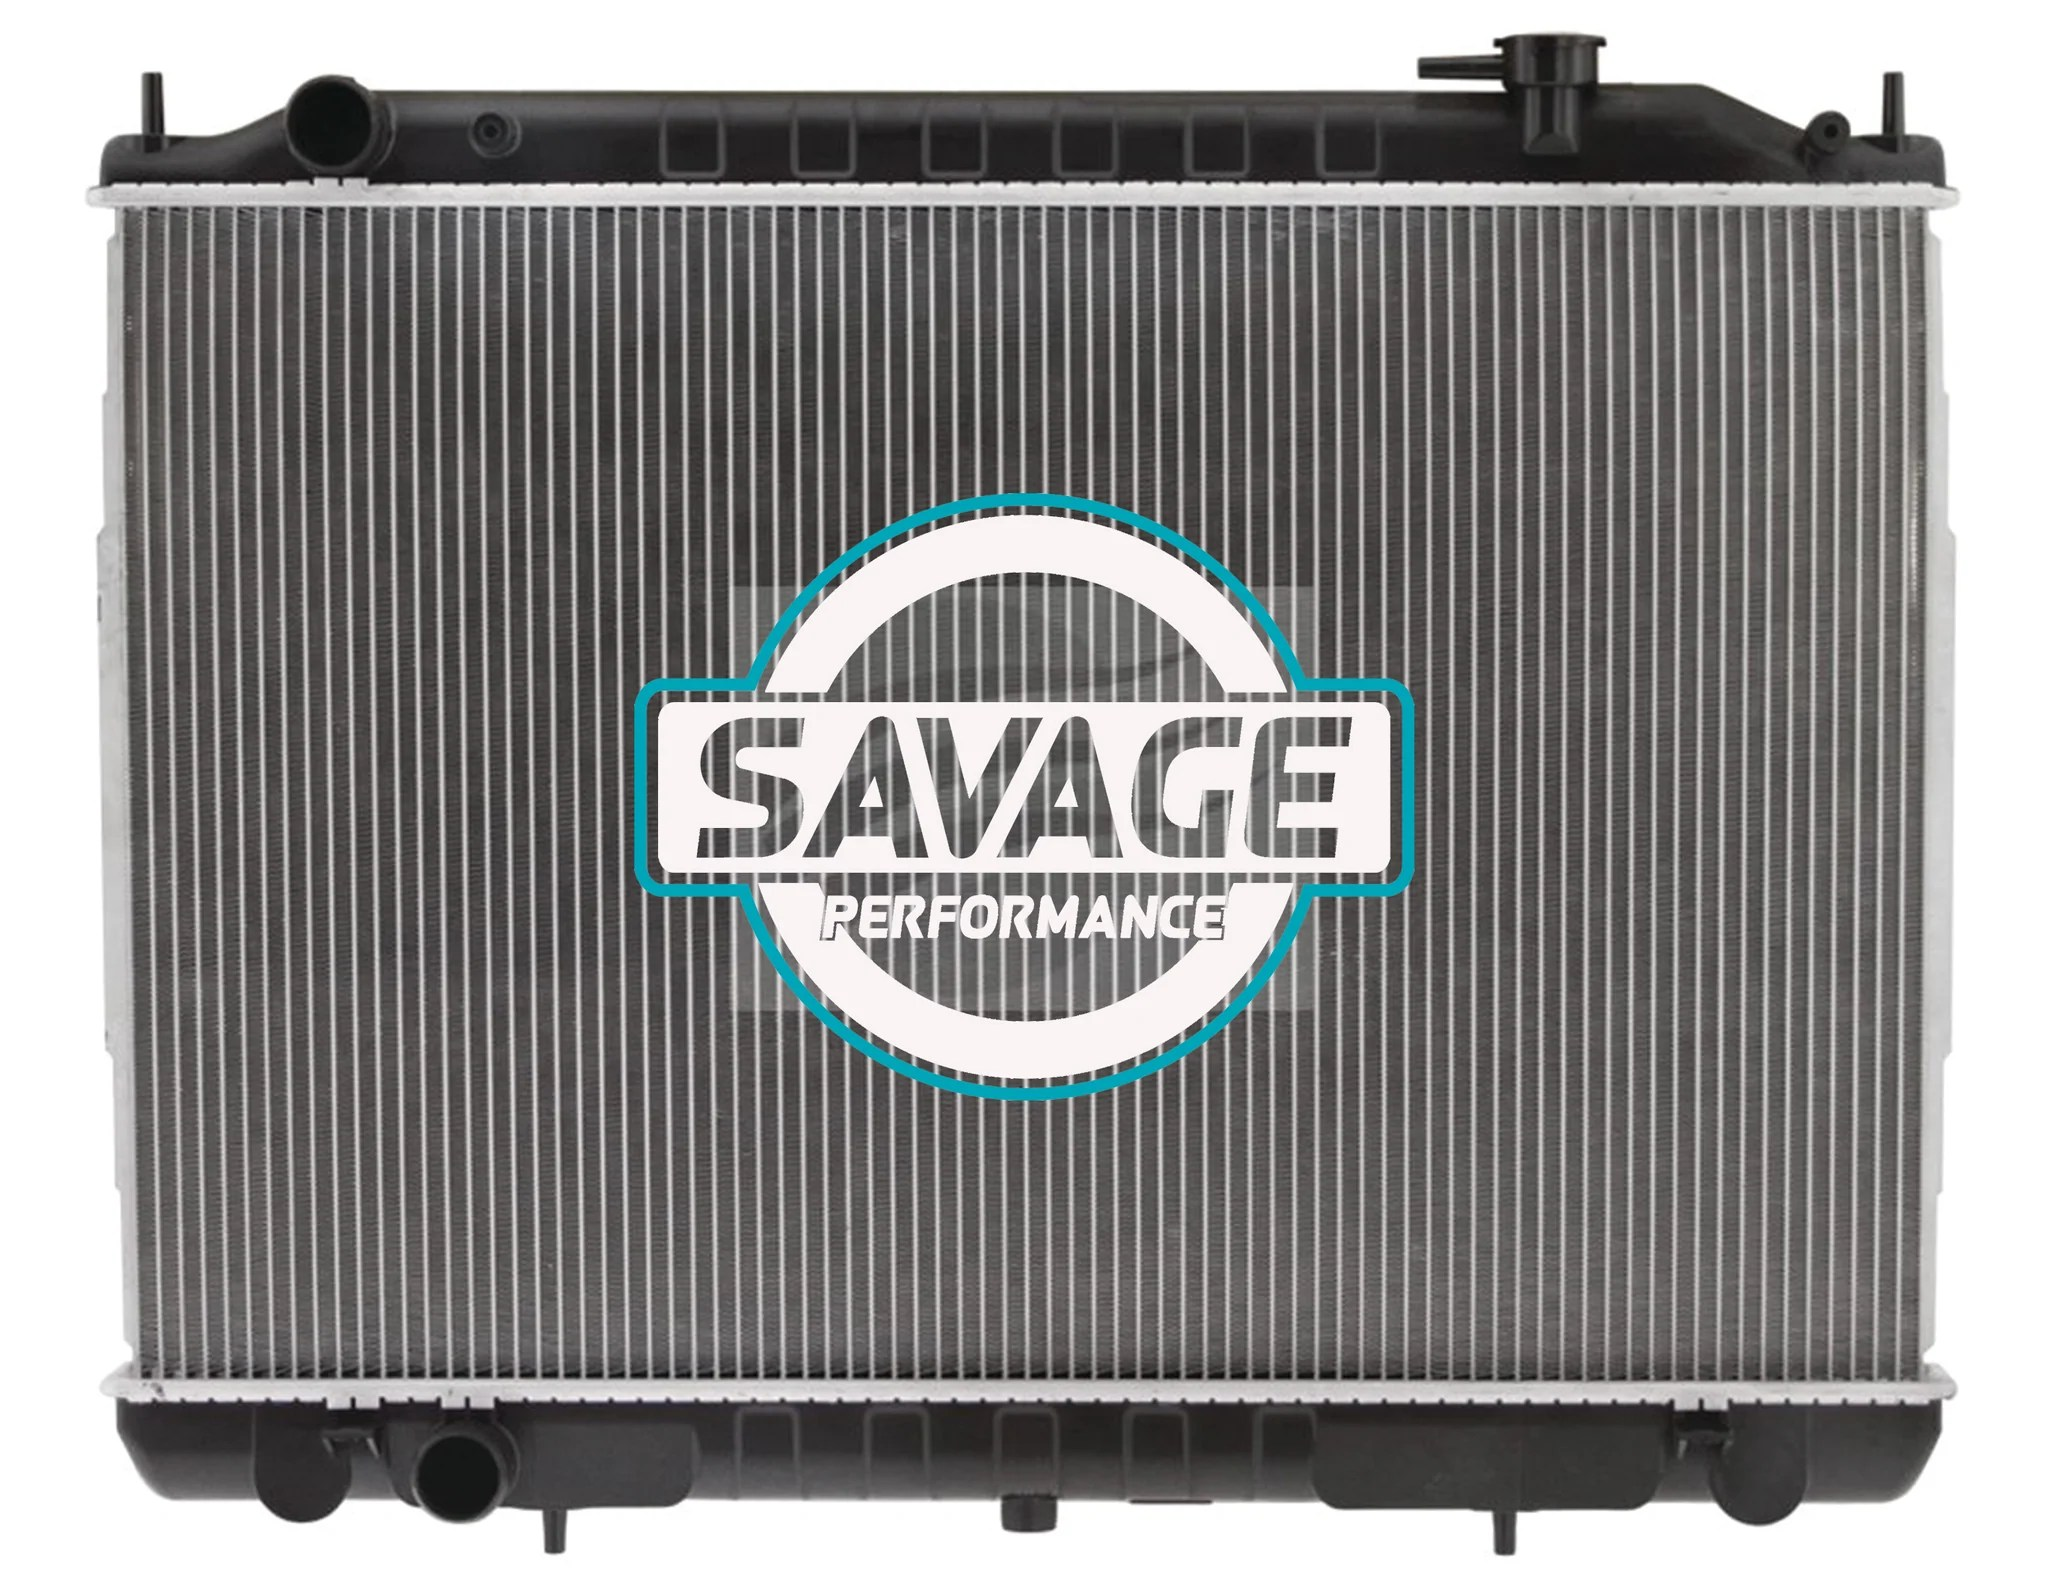 hight resolution of nissan navara d22 2009 yd25 2 5l dsl radiator savage performance and spares